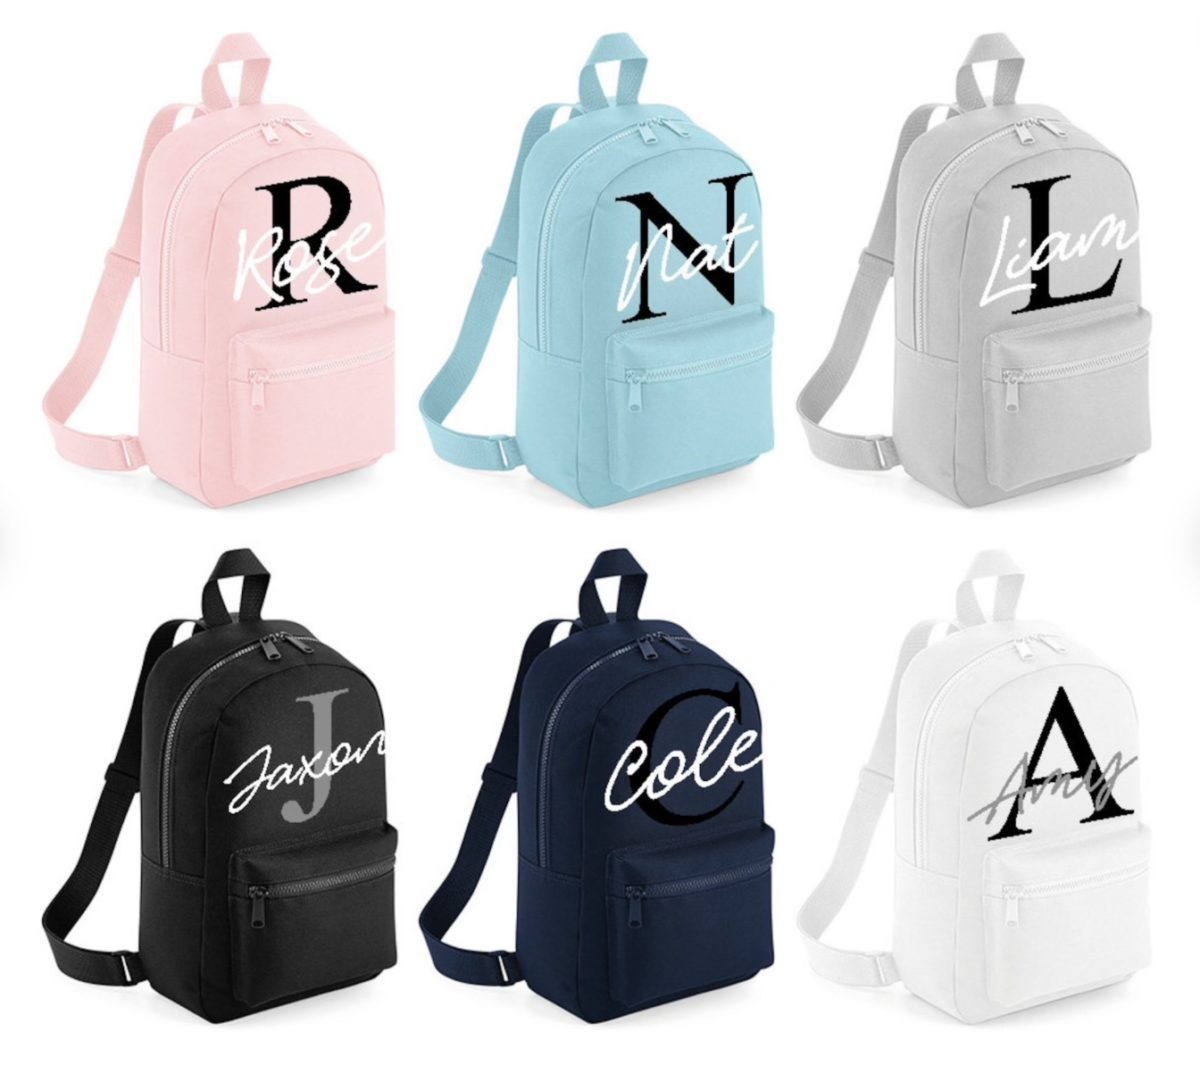 the back-to-school items you need to feel prepared!